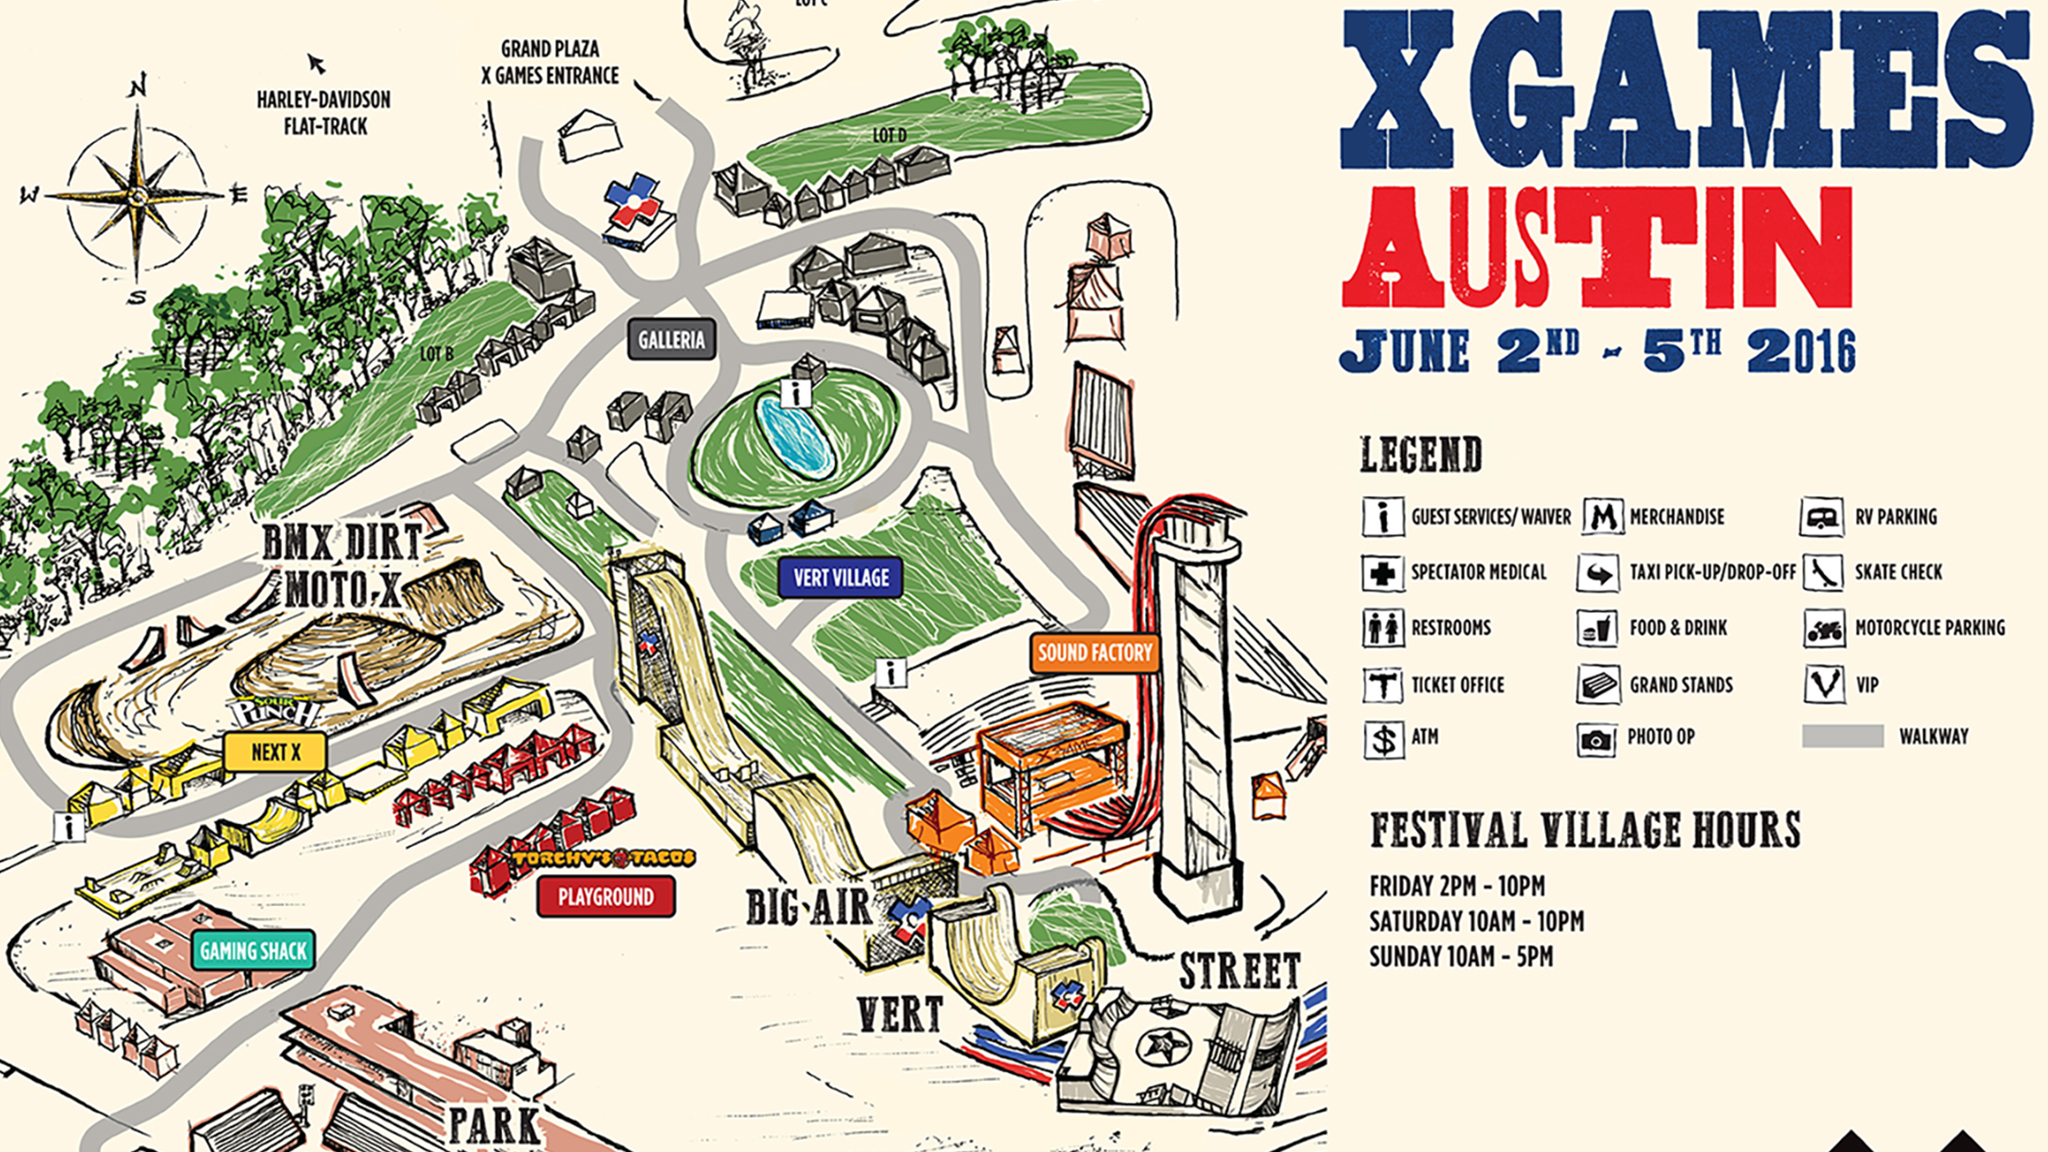 X Games Austin 2016 dates announced